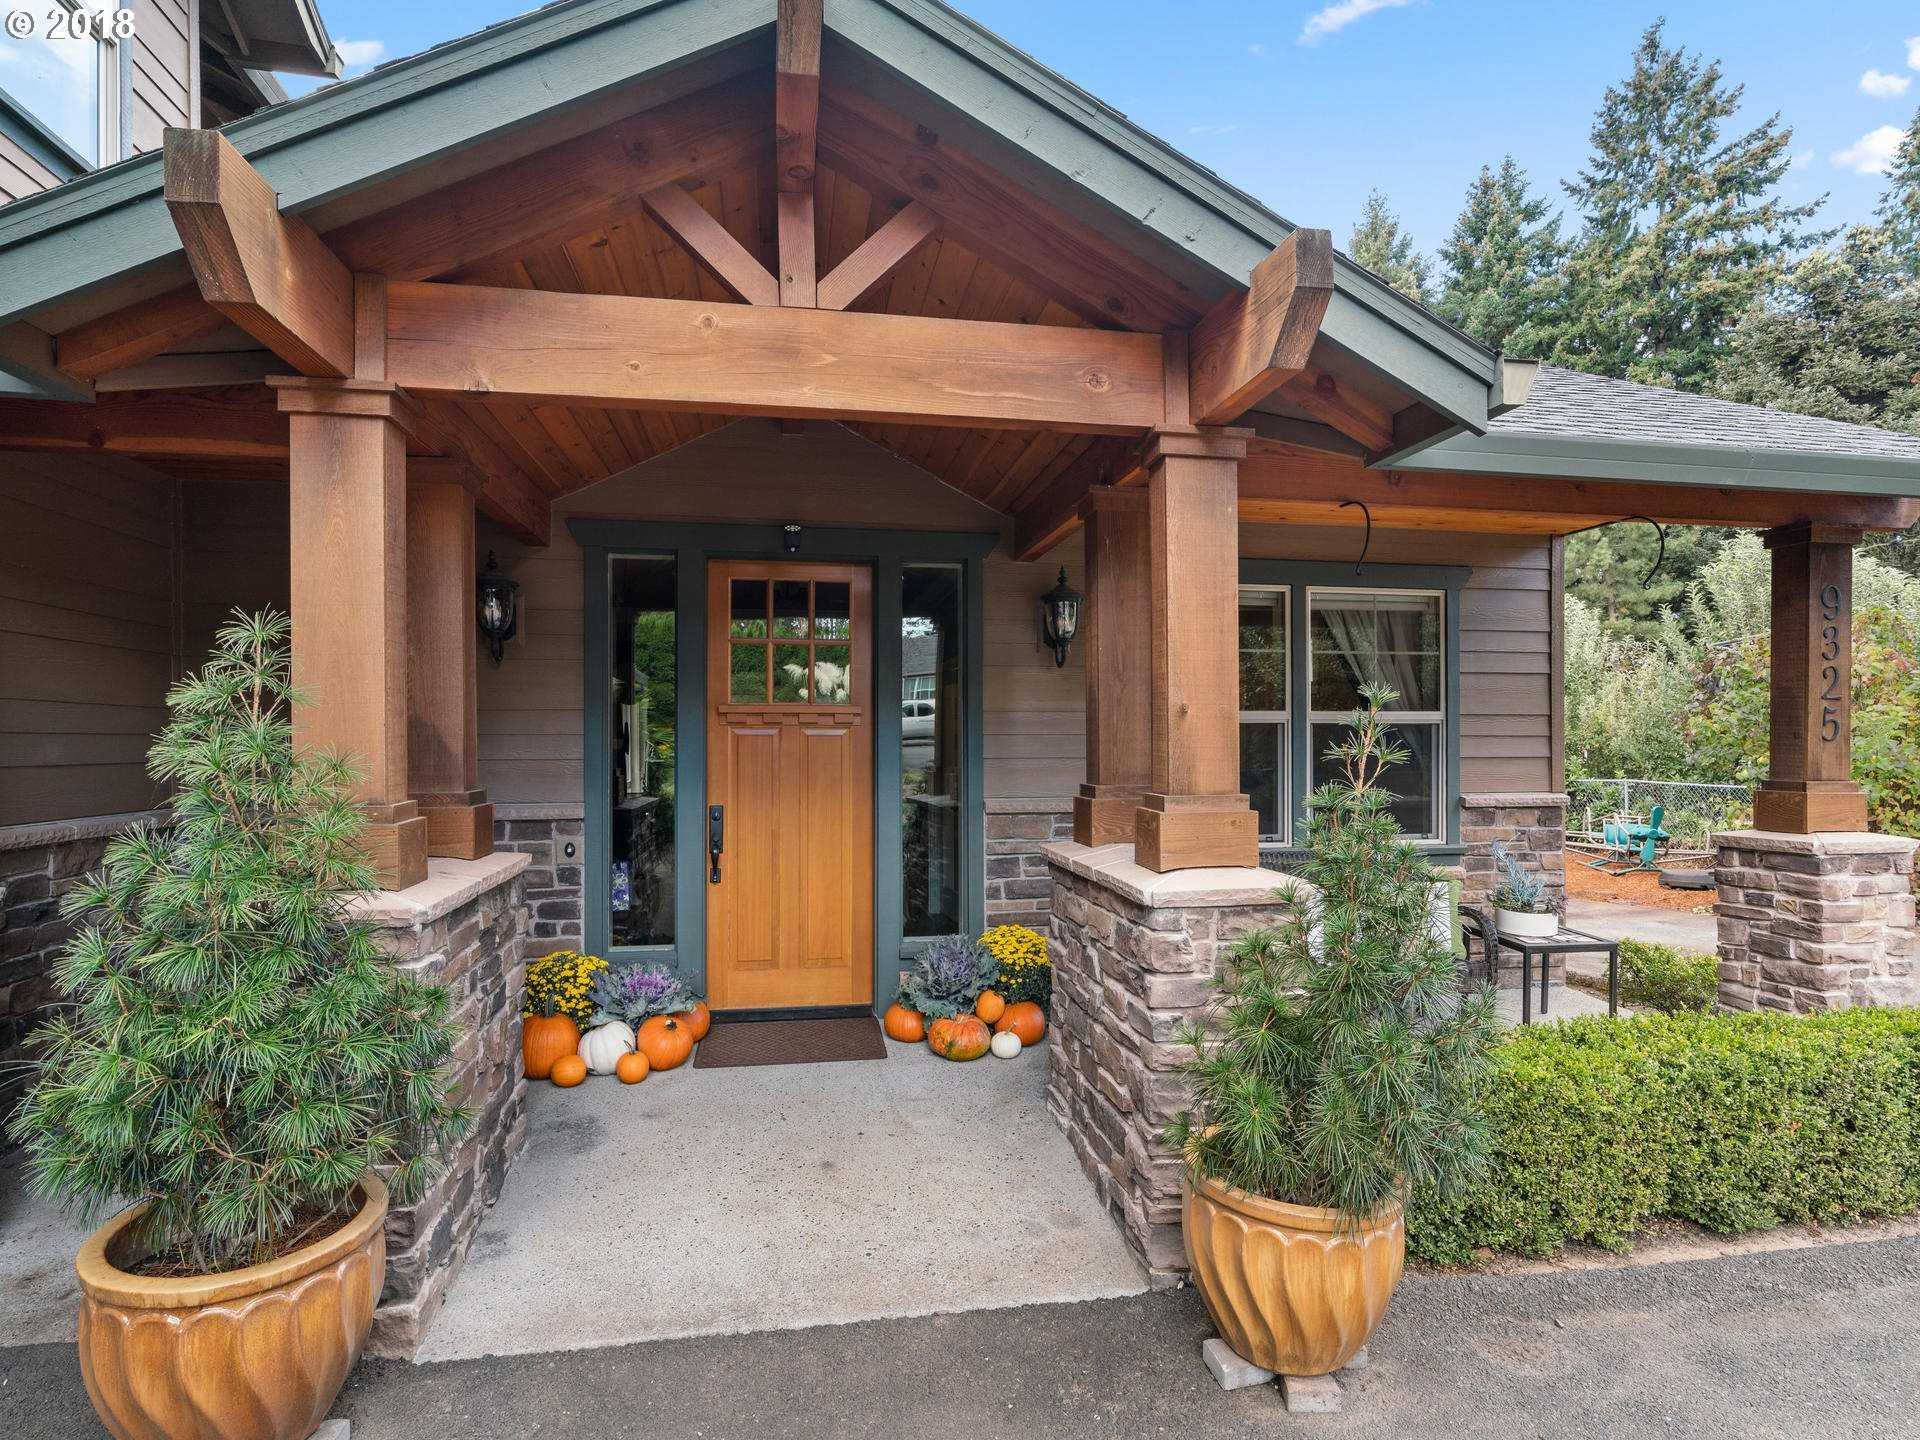 $870,000 - 5Br/5Ba -  for Sale in Tigard, Tigard